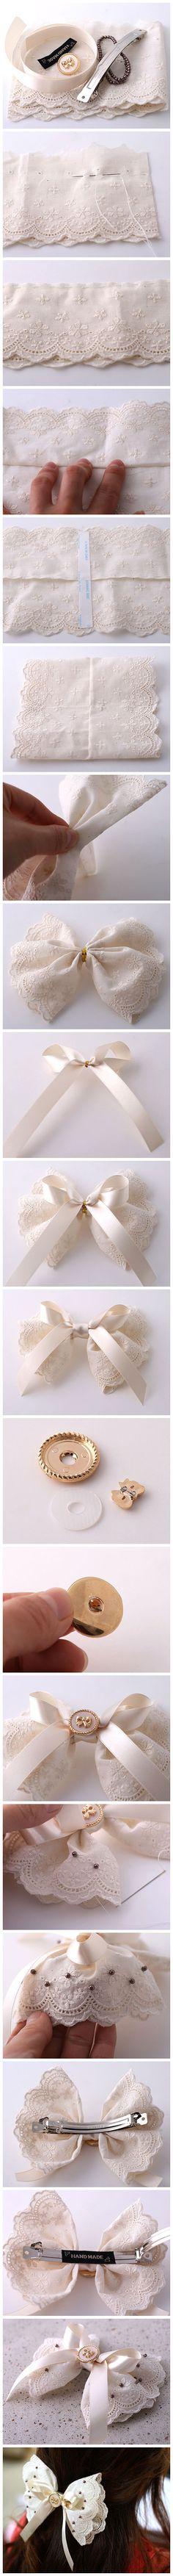 Make Hair Bows DIY Hair Bow diy accessories crafts home made easy crafts craft idea crafts ideas diy ideas diy crafts diy idea do it yourself diy projects diy craft handmade diy fashion Diy Ribbon, Ribbon Crafts, Ribbon Bows, Ribbons, Sewing Crafts, Sewing Projects, Diy Crafts, Diy Projects, Diy Flowers